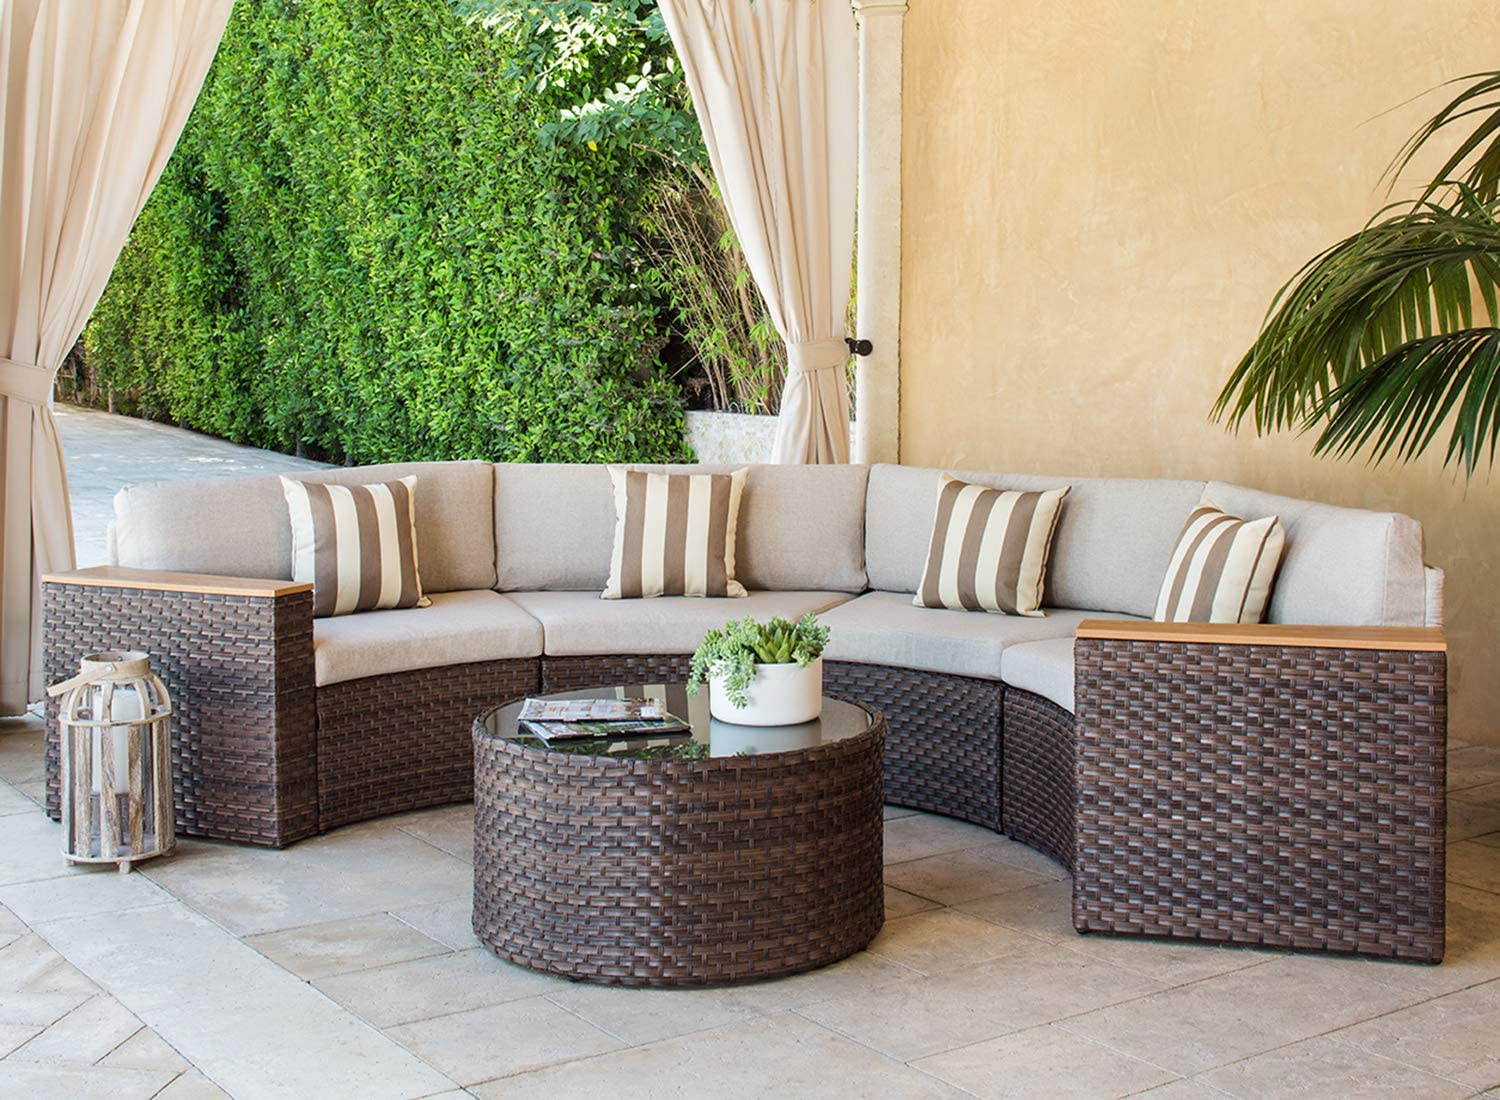 Amazon Com Solaura Outdoor 5 Piece Sectional Furniture Patio Half Moon Set Brown Wicker Conversation Sofa Set With Beige Cushions Sophisticated Glass Coffee Table Beige Garden Outdoor